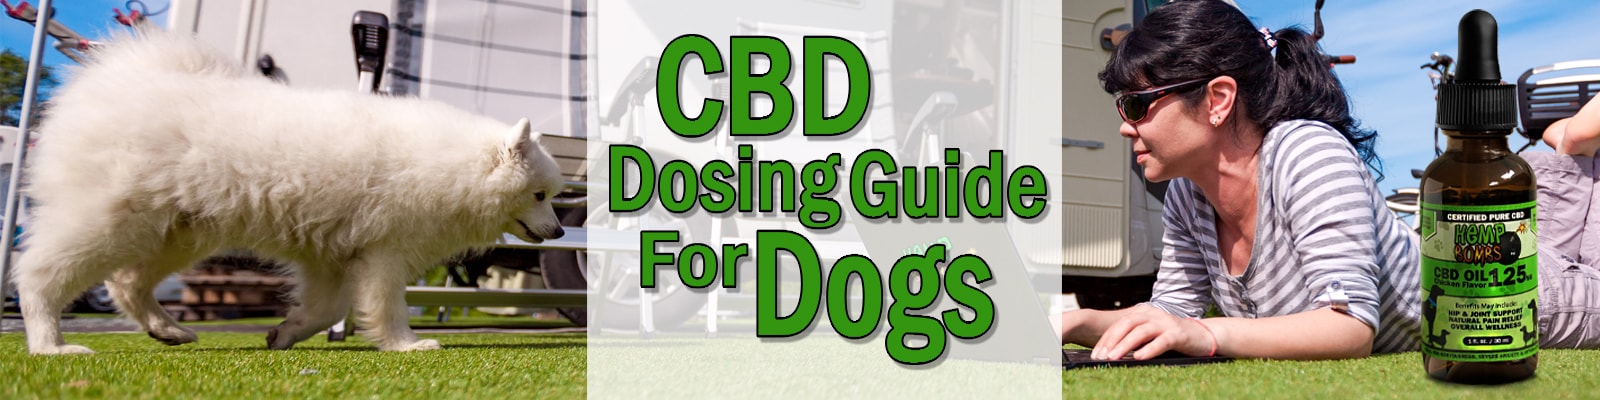 How Much CBD Oil Should I Give My Dog Based on Weight